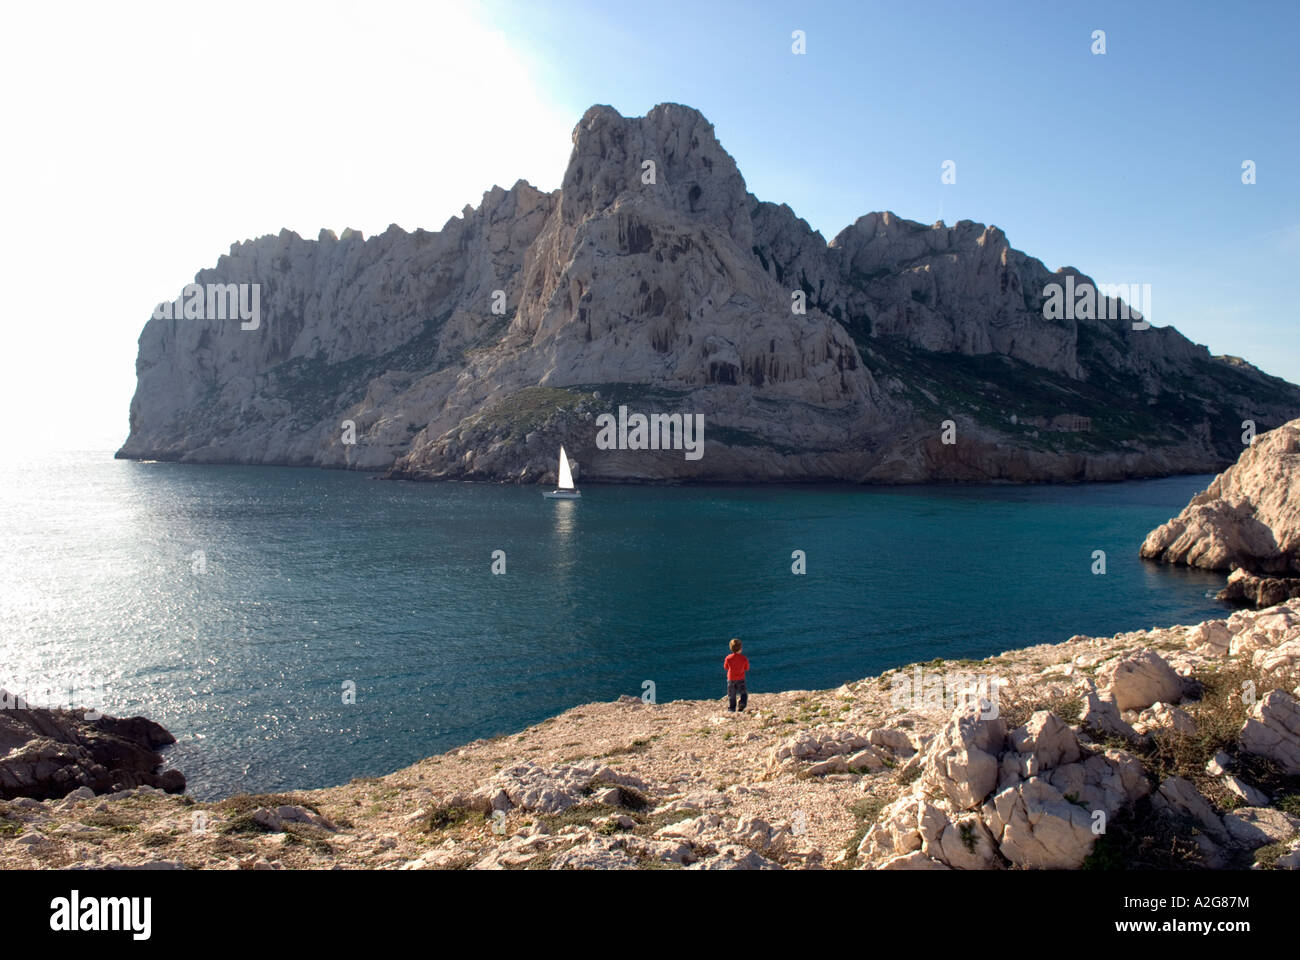 349 a little boy stands on a cliff overlooking a bay and island, watching a passing sailing boat - Stock Image